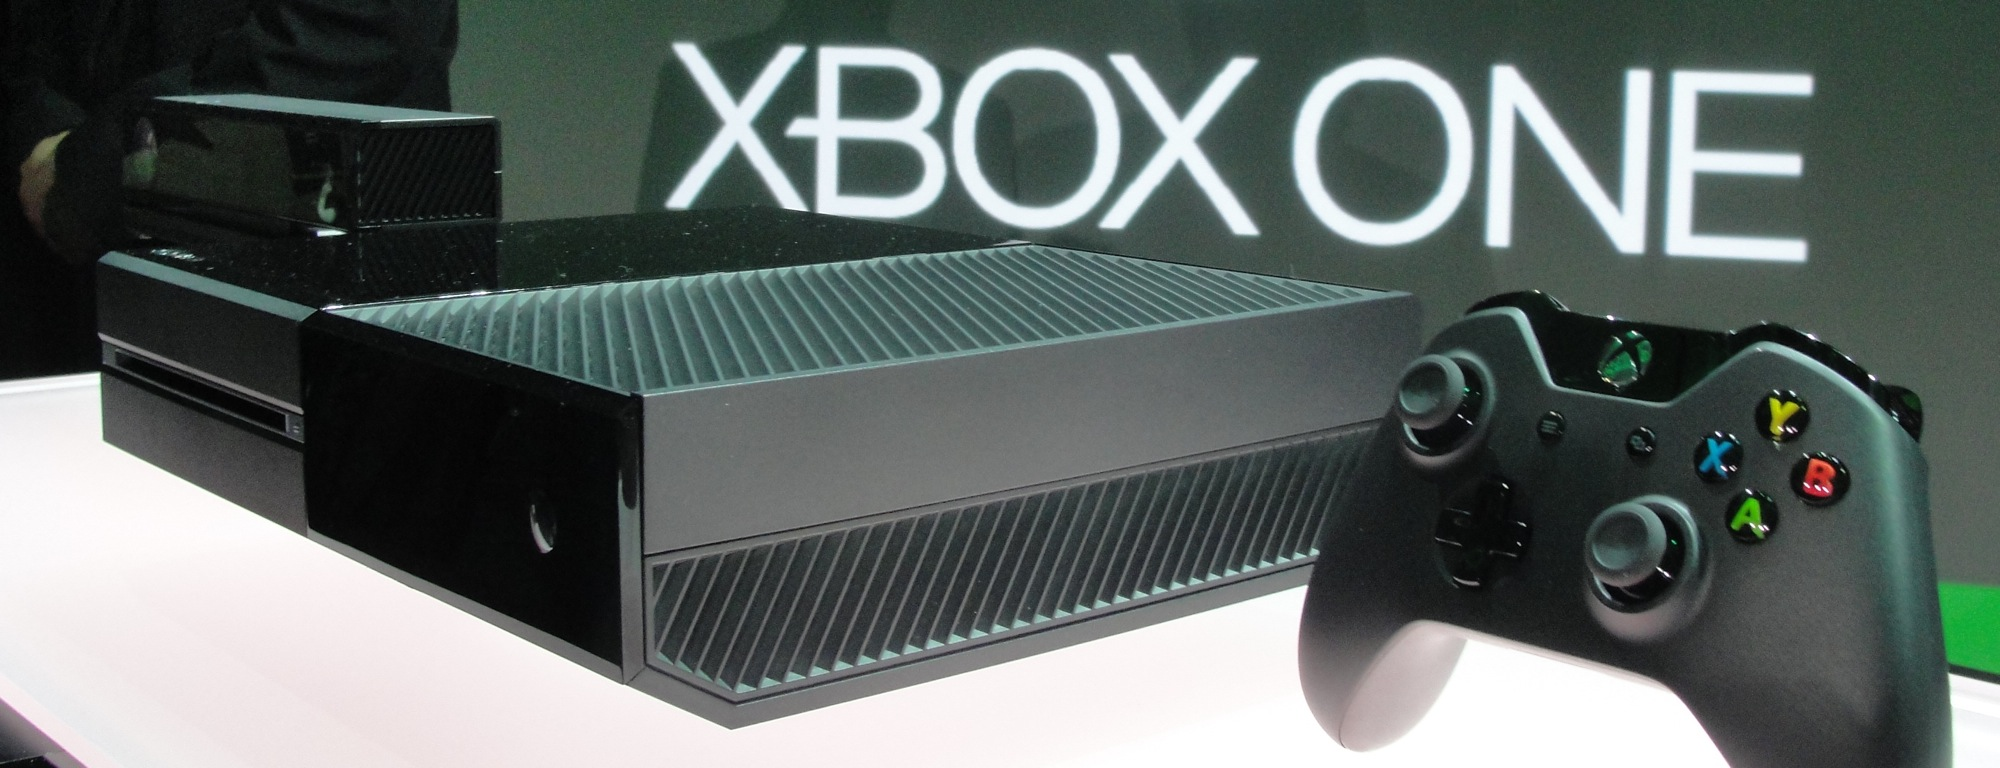 Xbox One problems affect only 'a very small number' of customers, says Microsoft